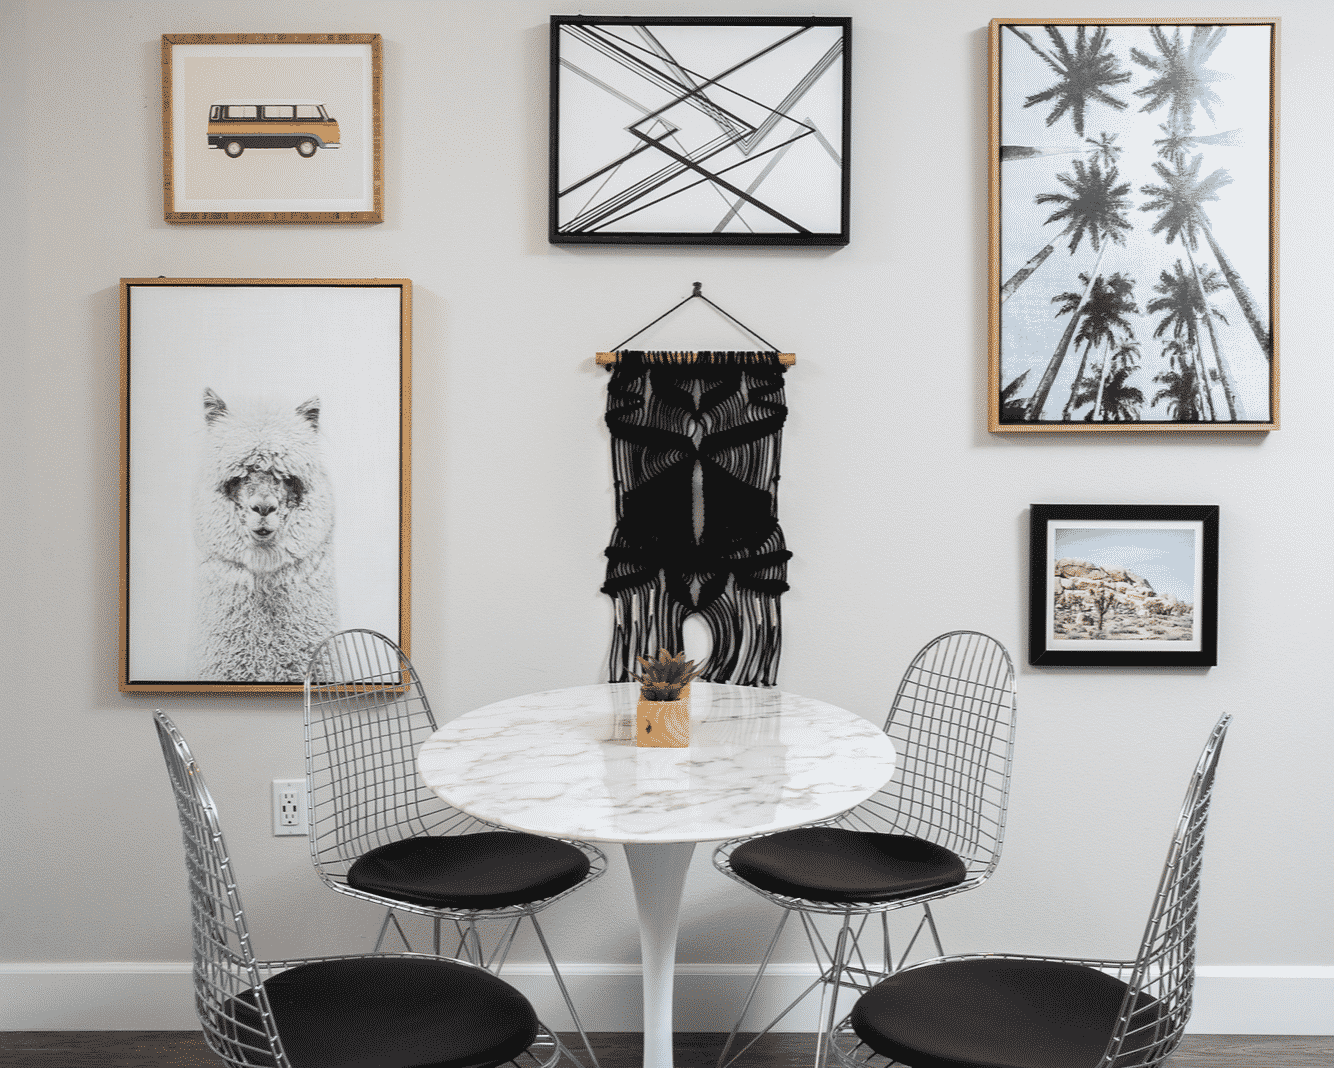 Marble round table with a four metal chairs and paintings on the wall